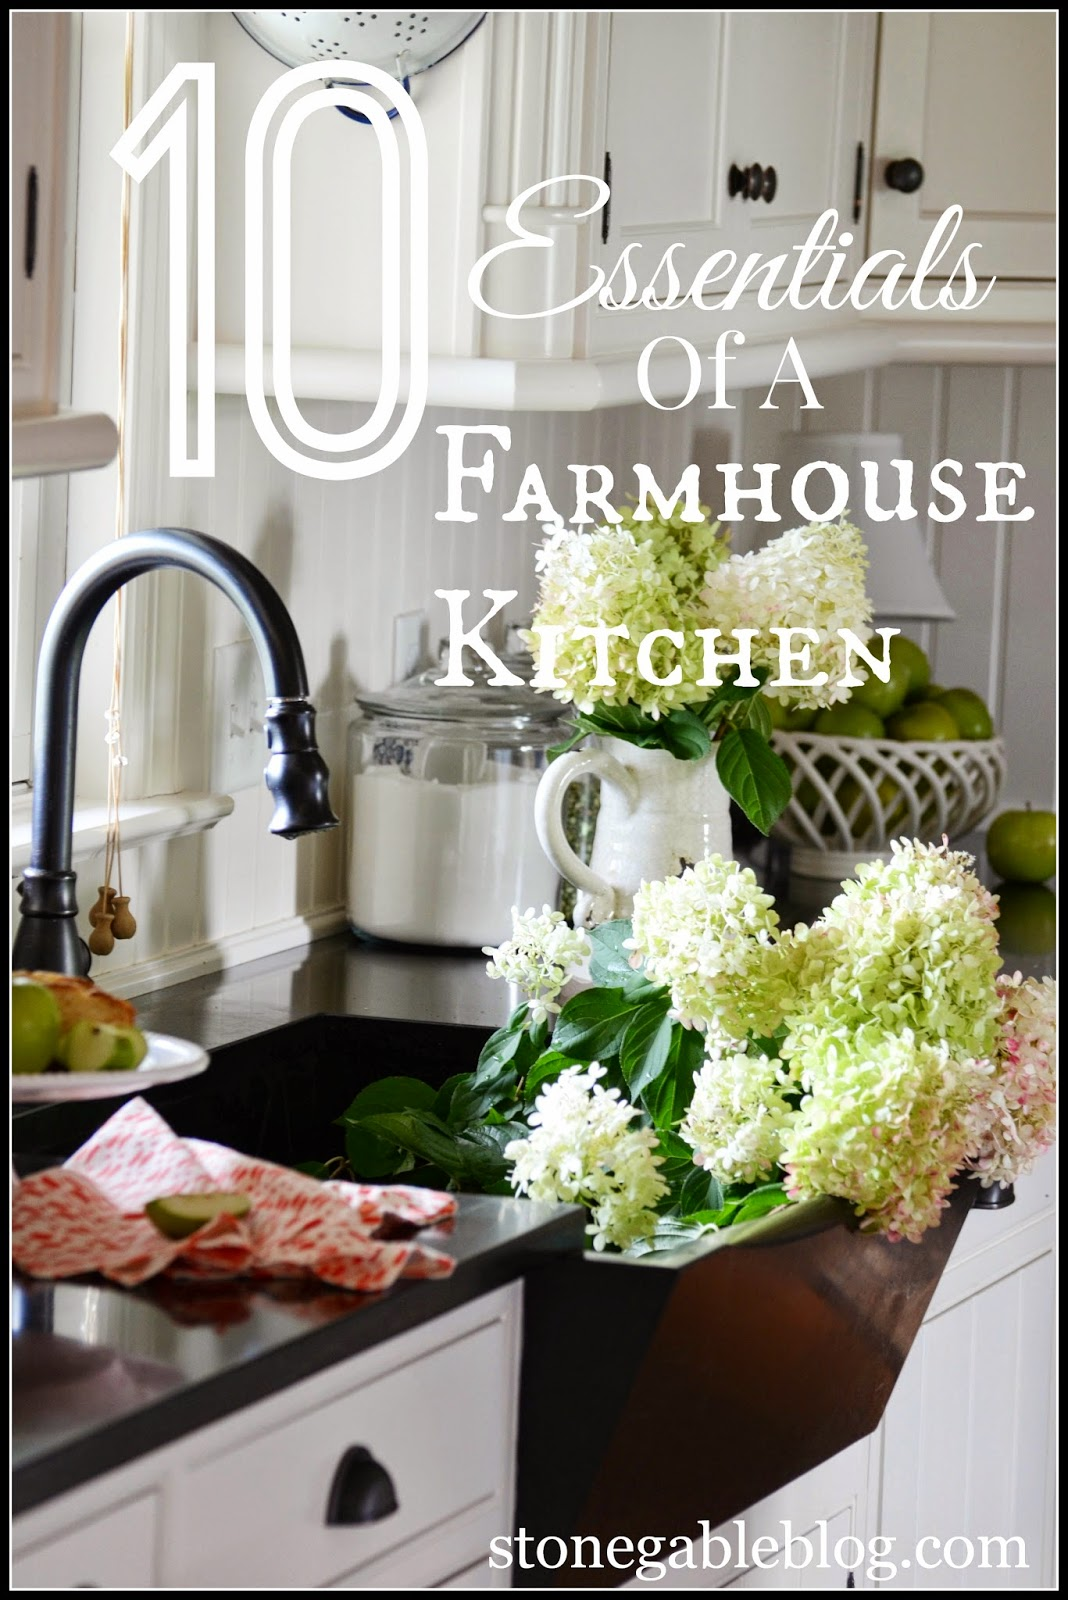 10 ELEMENTS OF A FARMHOUSE KITCHEN - StoneGable on kitchen color ideas, rustic kitchen ideas, kitchen sewing ideas, kitchen design, kitchen wood ideas, kitchen ceiling treatment ideas, kitchen decorations, kitchen storage ideas, kitchen themes, kitchen flower arrangement ideas, kitchen cabinets ideas, kitchen accessories, kitchen decorating, kitchen fall ideas, kitchen modern ideas, kitchen electrical ideas, kitchen shabby chic, kitchen rugs ideas, kitchen backsplash ideas, kitchen remodeling ideas,